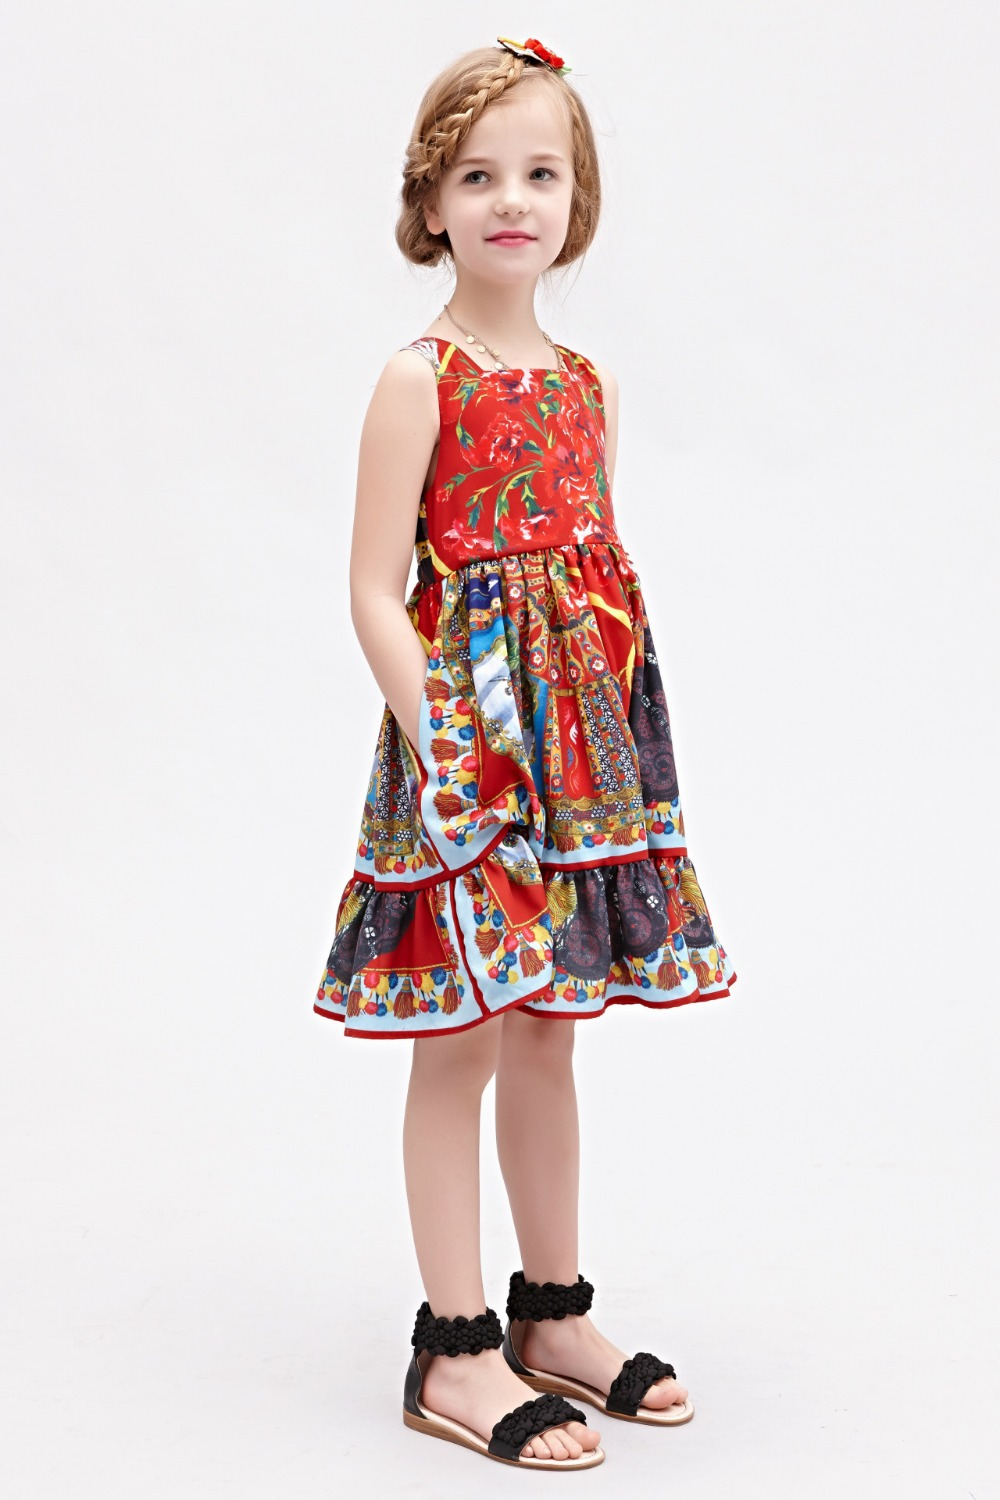 girl dress 2015 new spring summer baby girls dresses kids